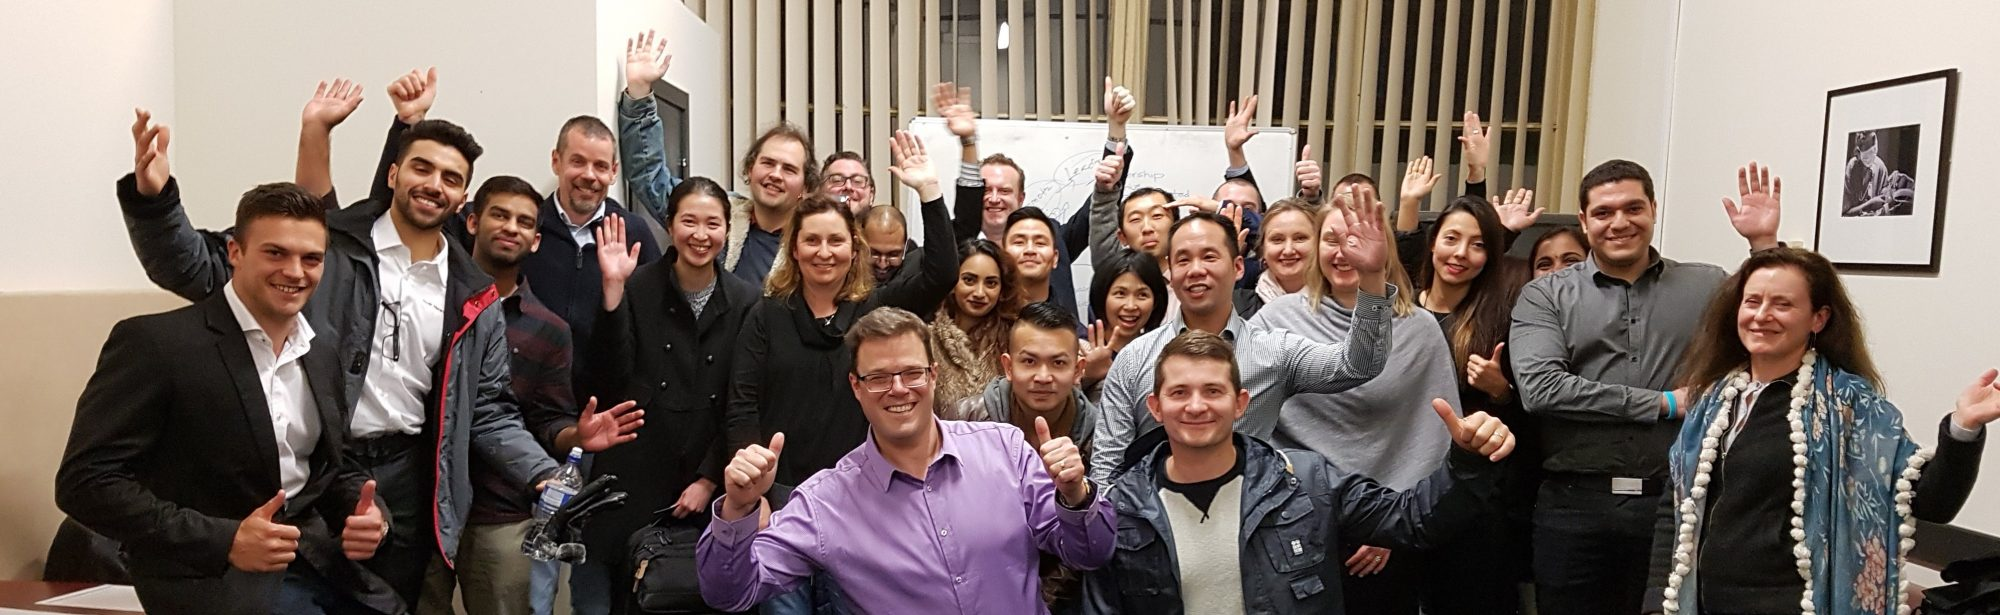 MeetUp Melbourne - Group Photo_June 18 - Leadership Skills - Small Business - Entrepreneurs